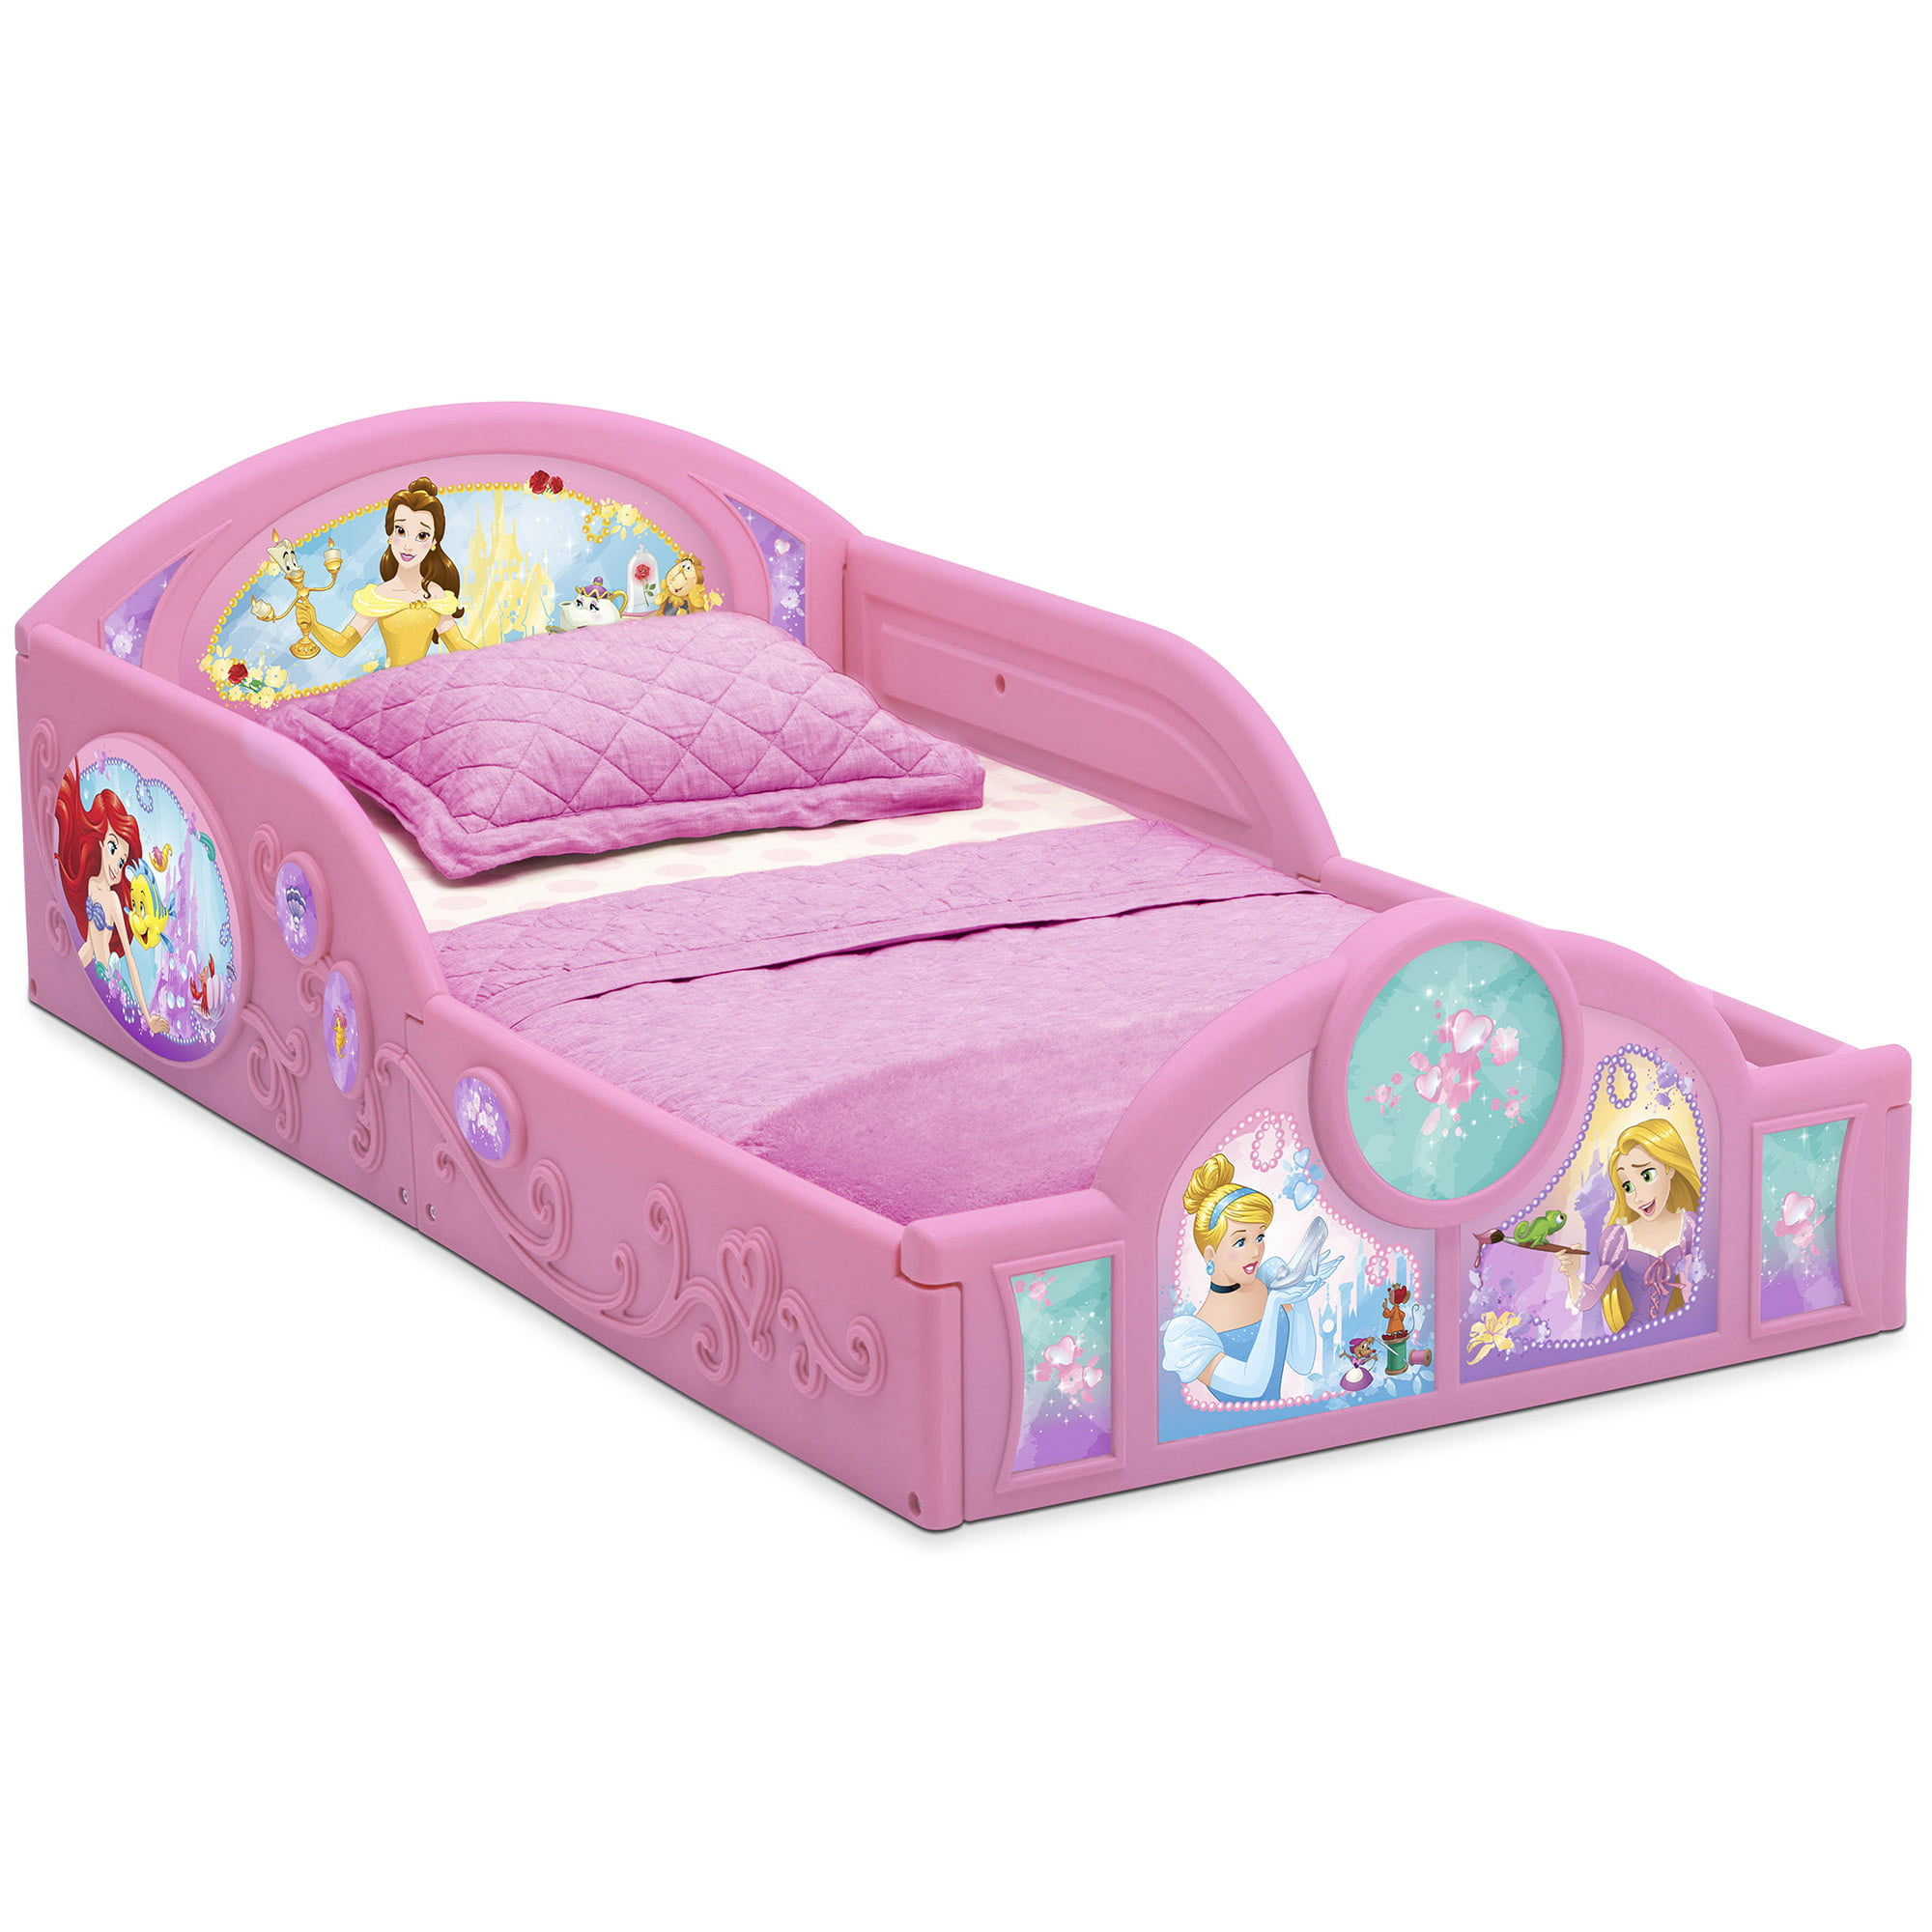 Disney Princess Plastic Sleep and Play Toddler Bed by ...